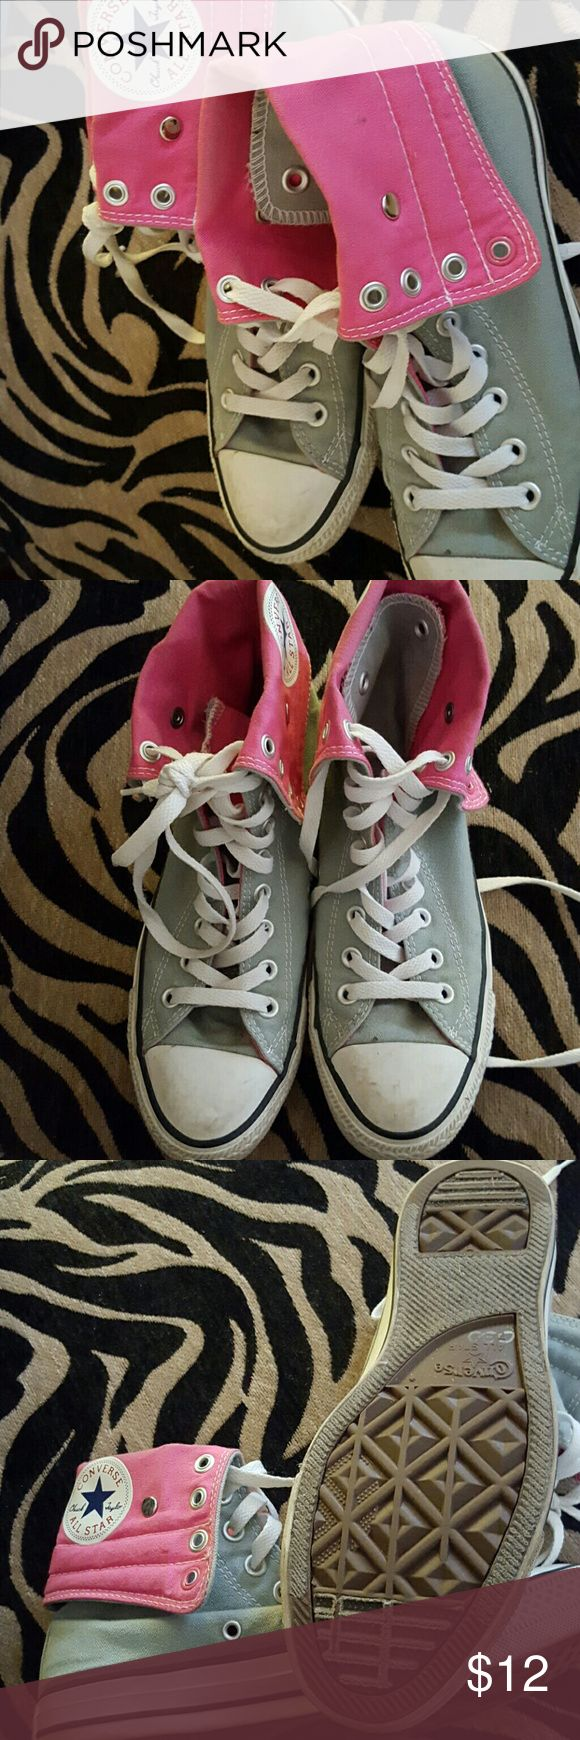 Sneakers Gray and pink high top converse Converse Shoes Sneakers